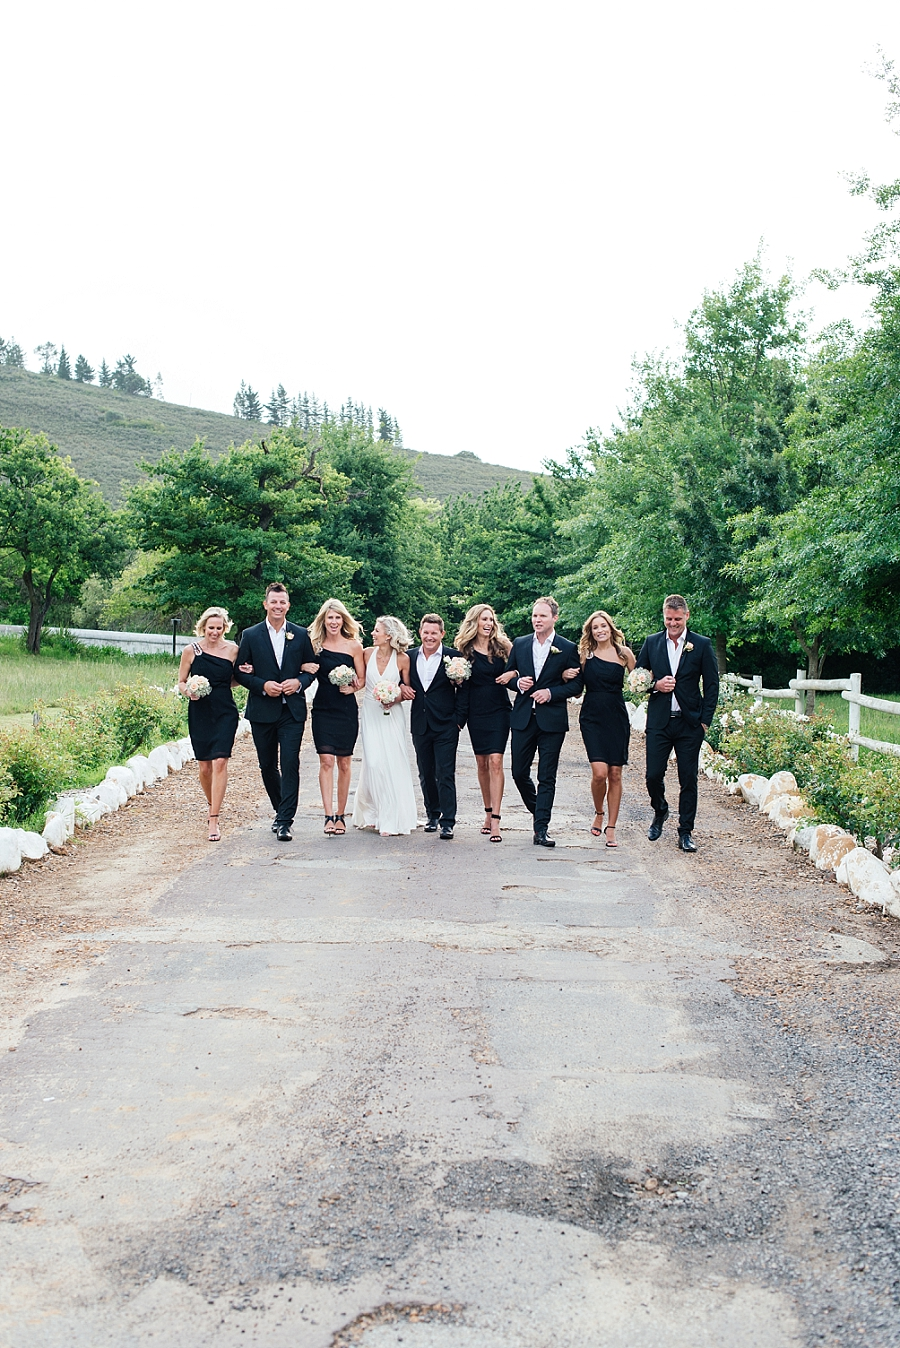 Darren Bester Photography - Cape Town Wedding Photographer - Lee and Lyall Johnson_0056.jpg